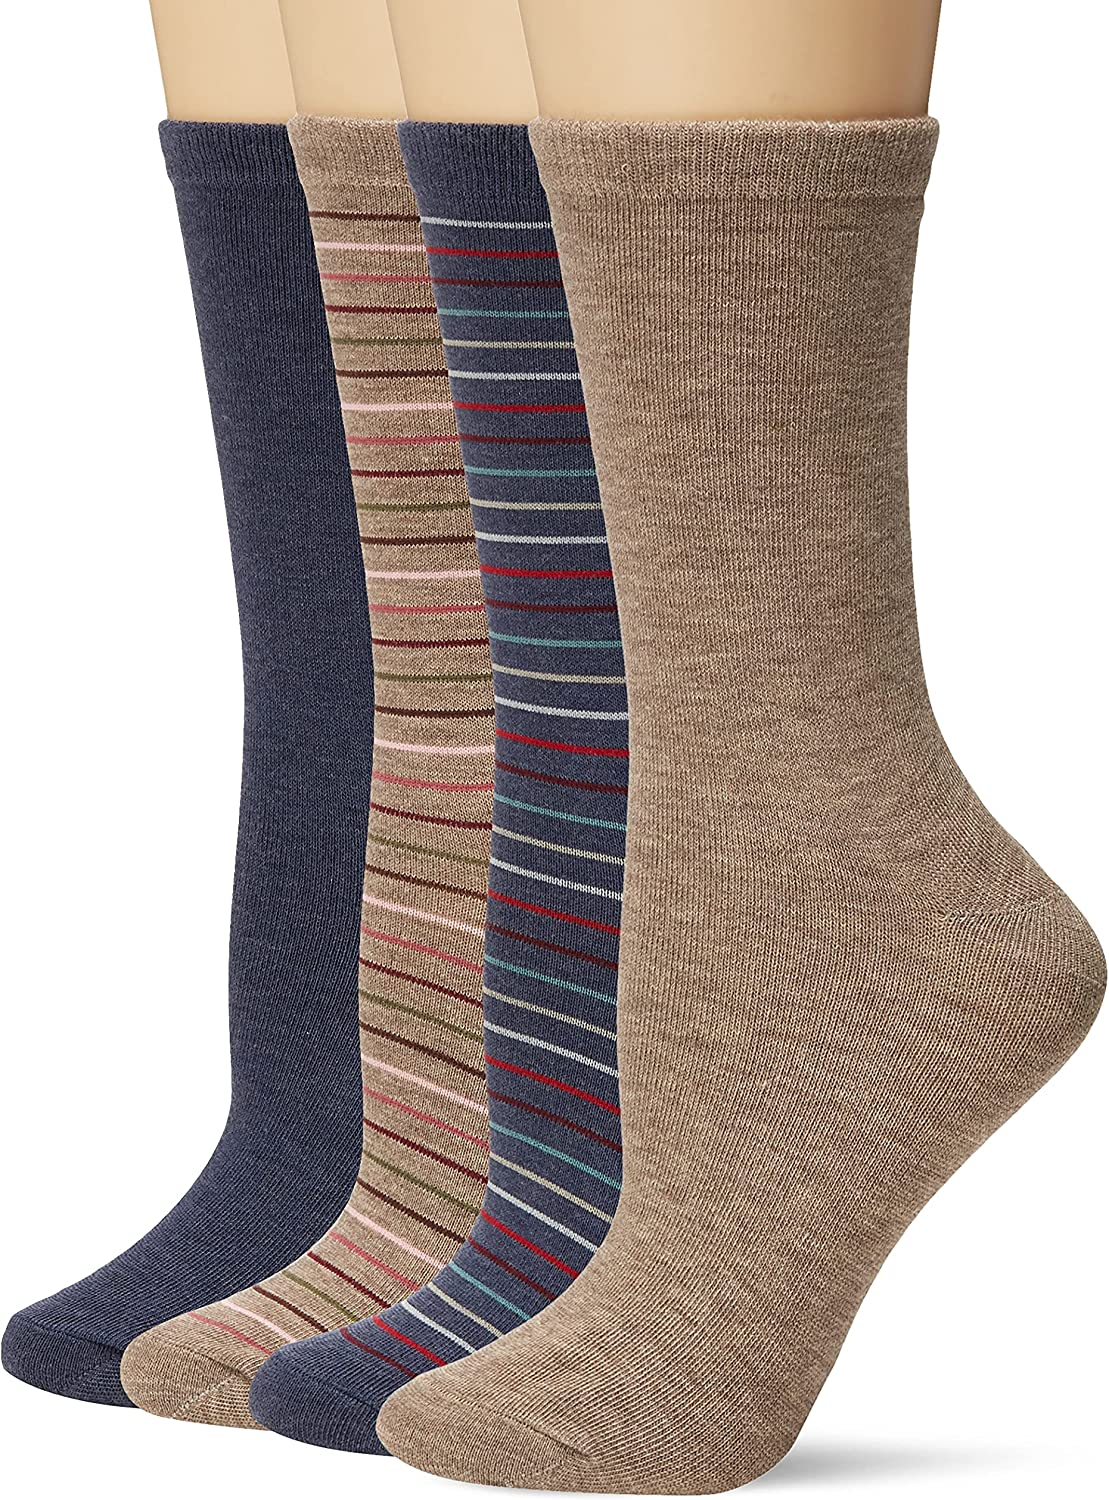 PEDS Women's Light Brown and Denim Heather Solids and Stripes Crew Socks 4 Pairs